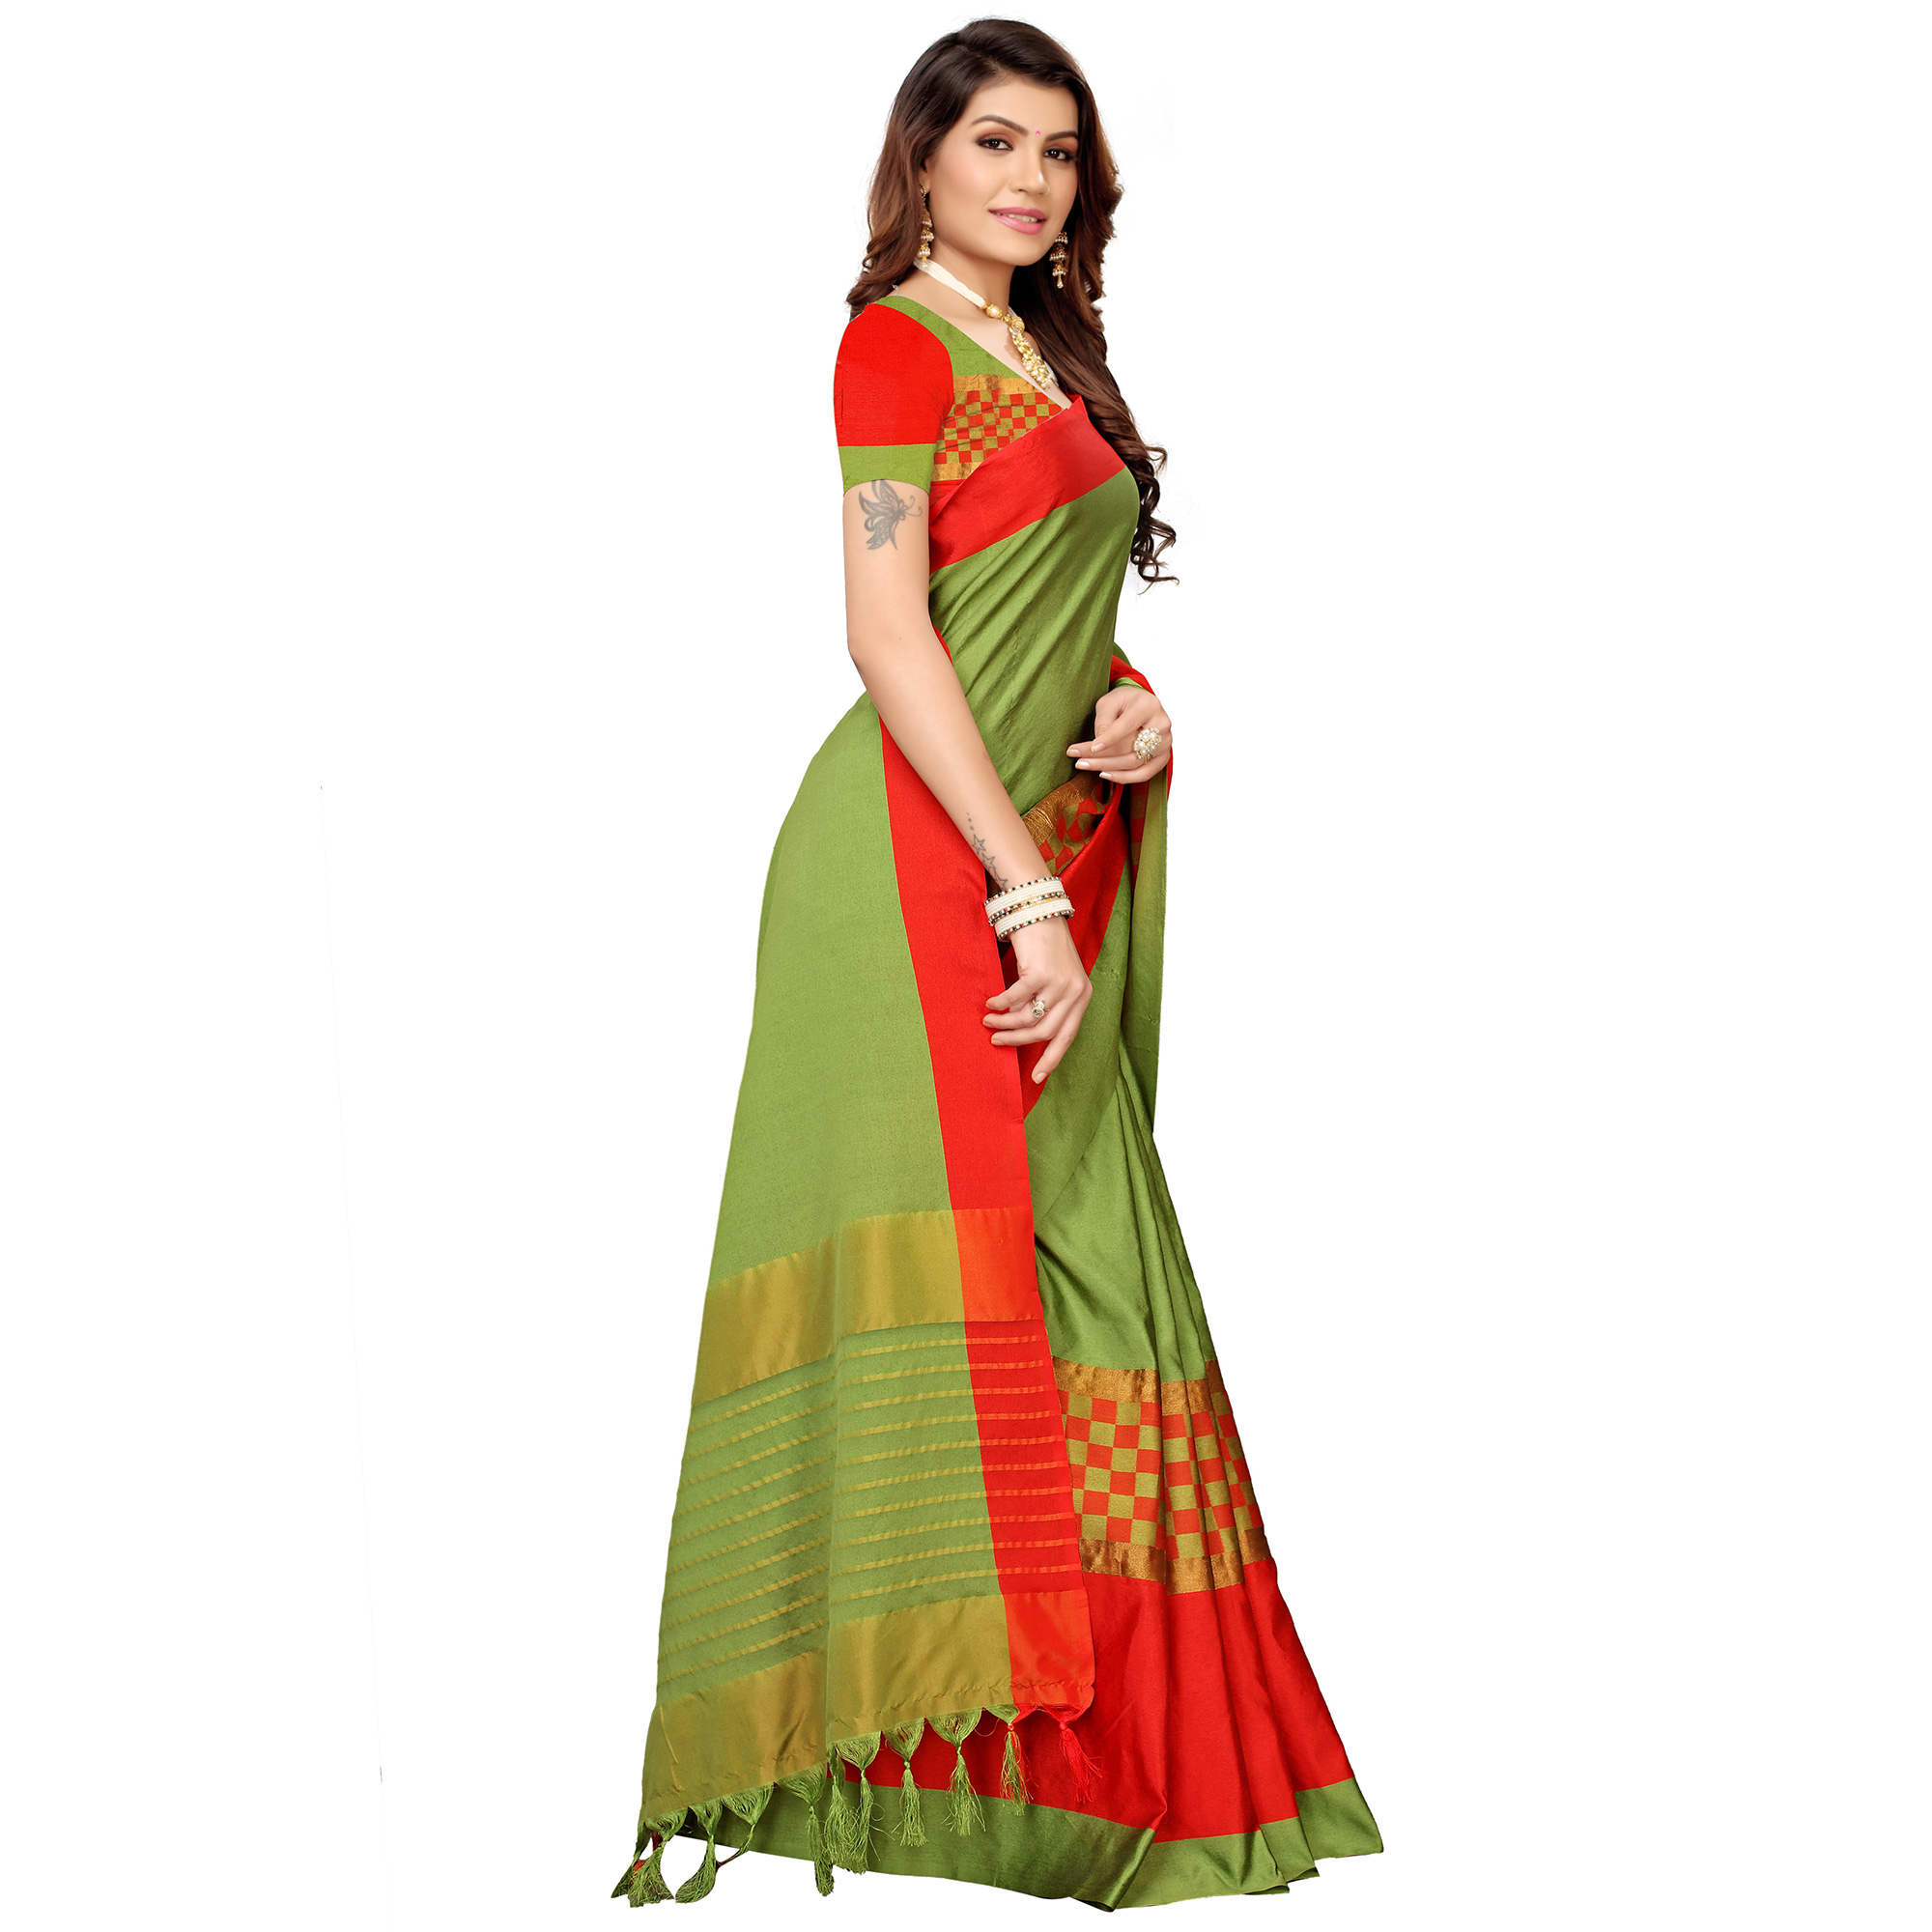 Groovy Olive Green Colored Festive Wear Woven Cotton Silk Saree